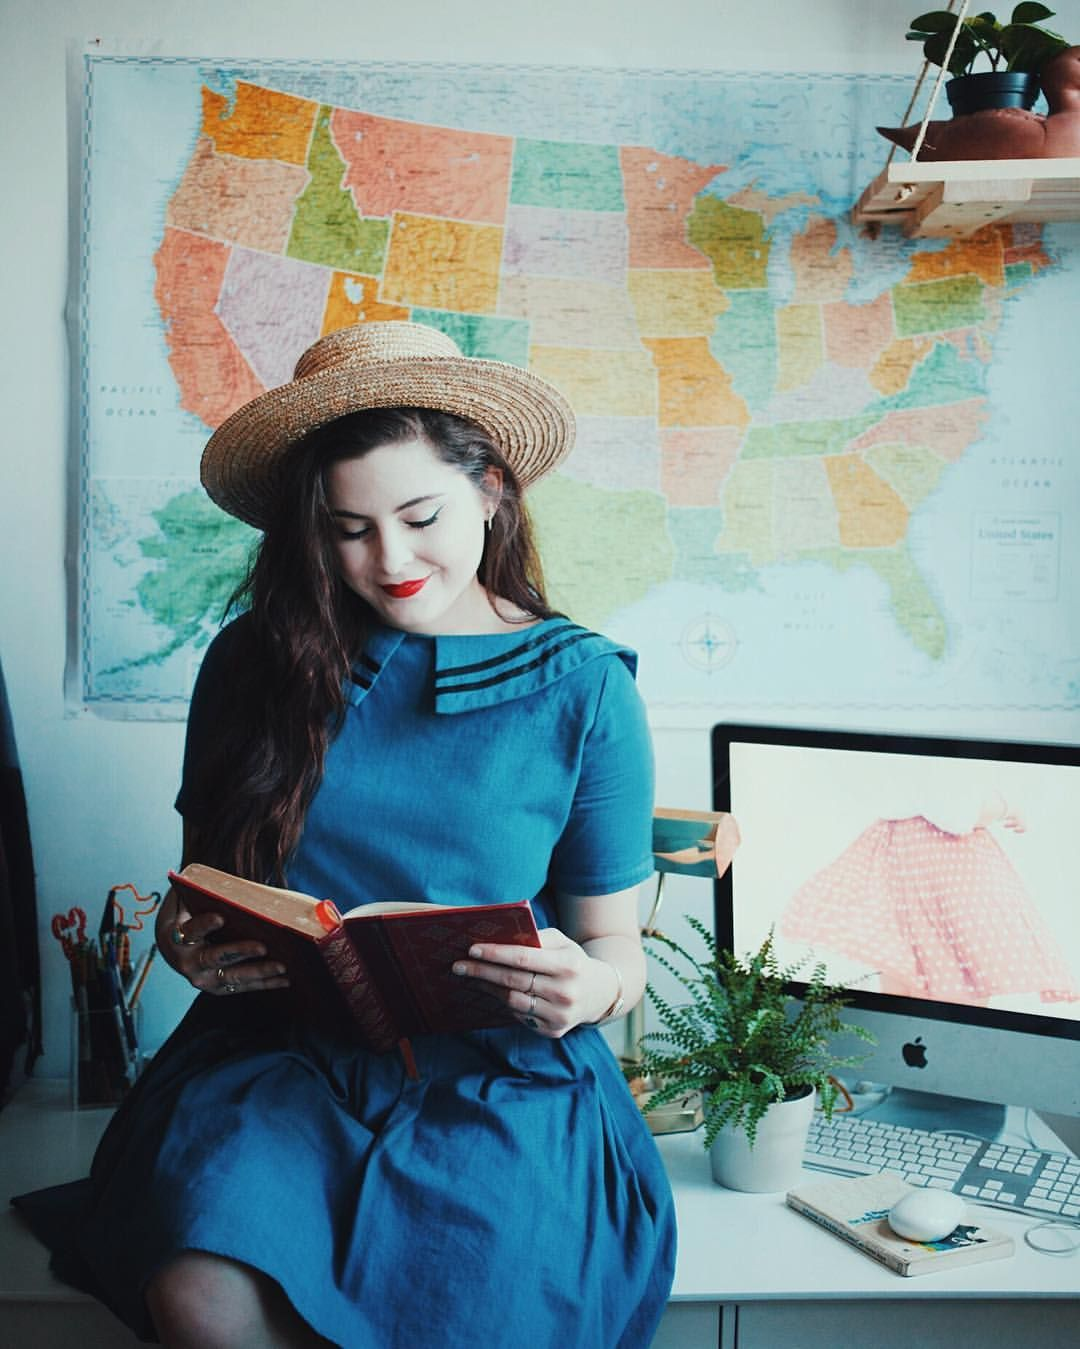 I've partnered with @randmcnallyofficial to show off how perfect their maps are for your home! I love how bright this one makes the desk and it really gets you daydreaming for travel and road trips!